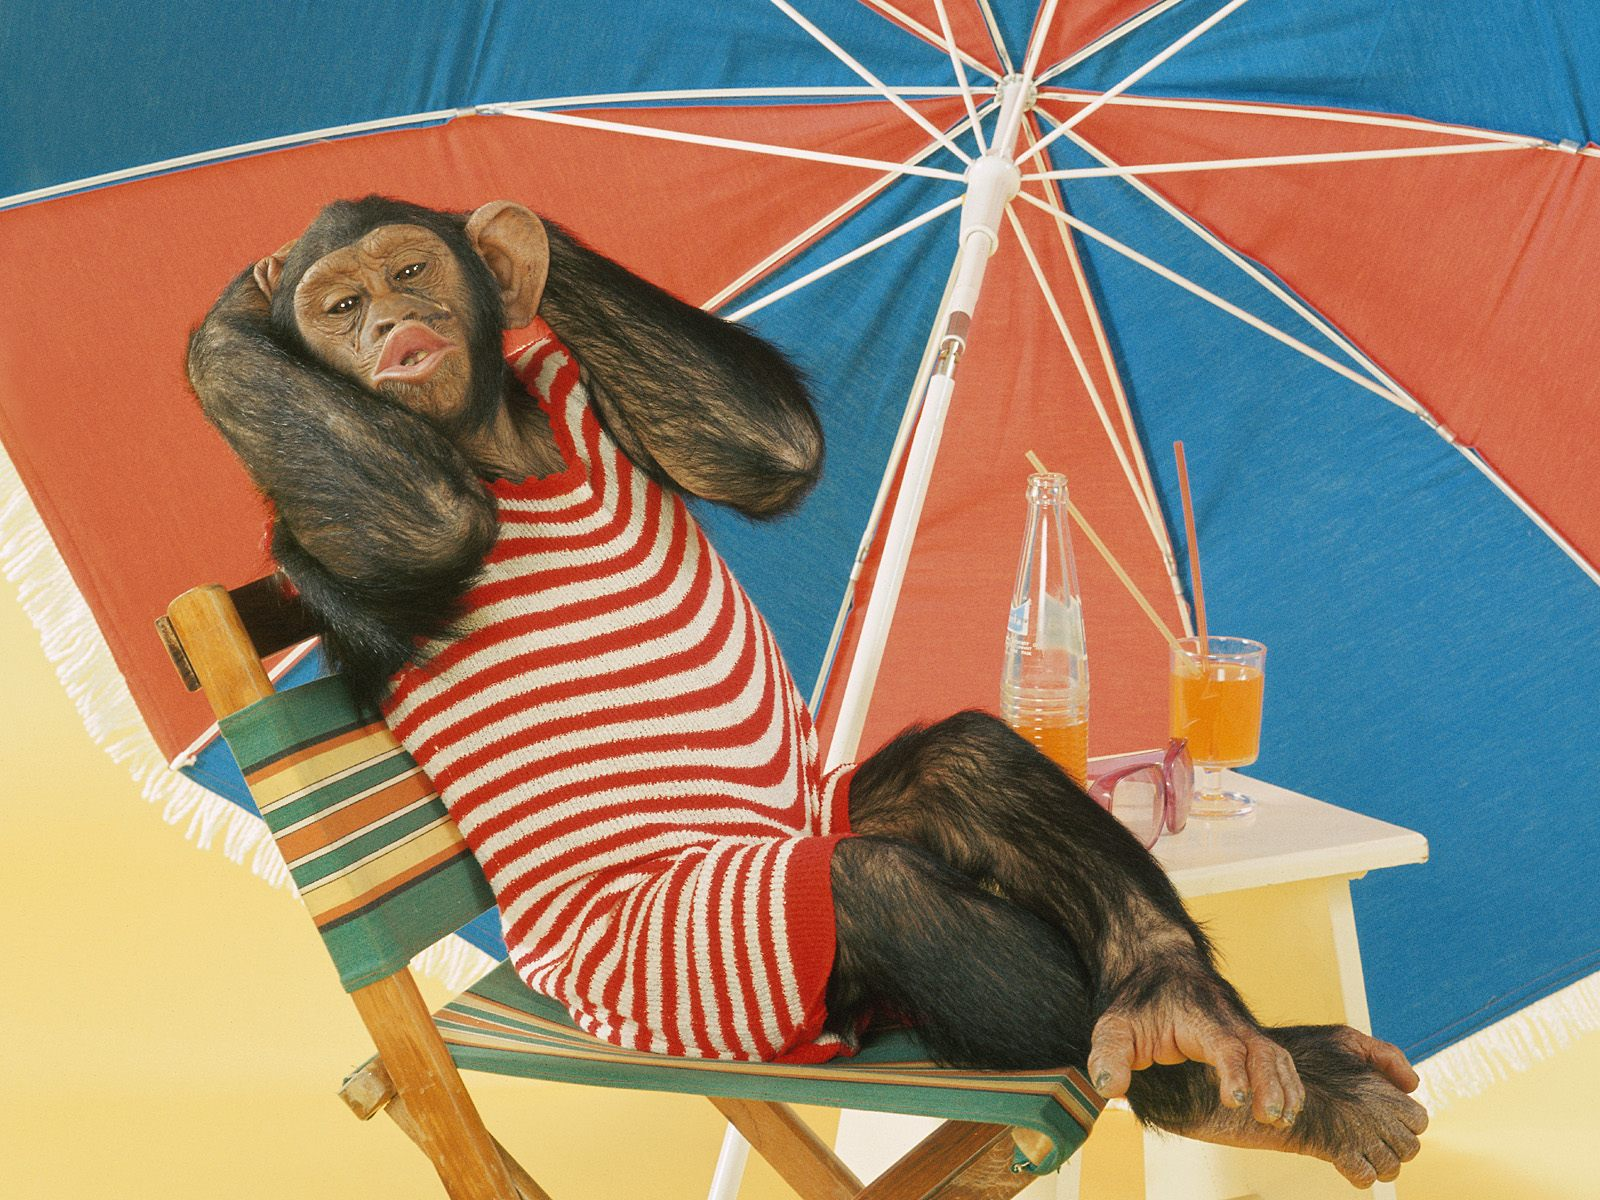 World Records A Beach Monkey In Easy Chair